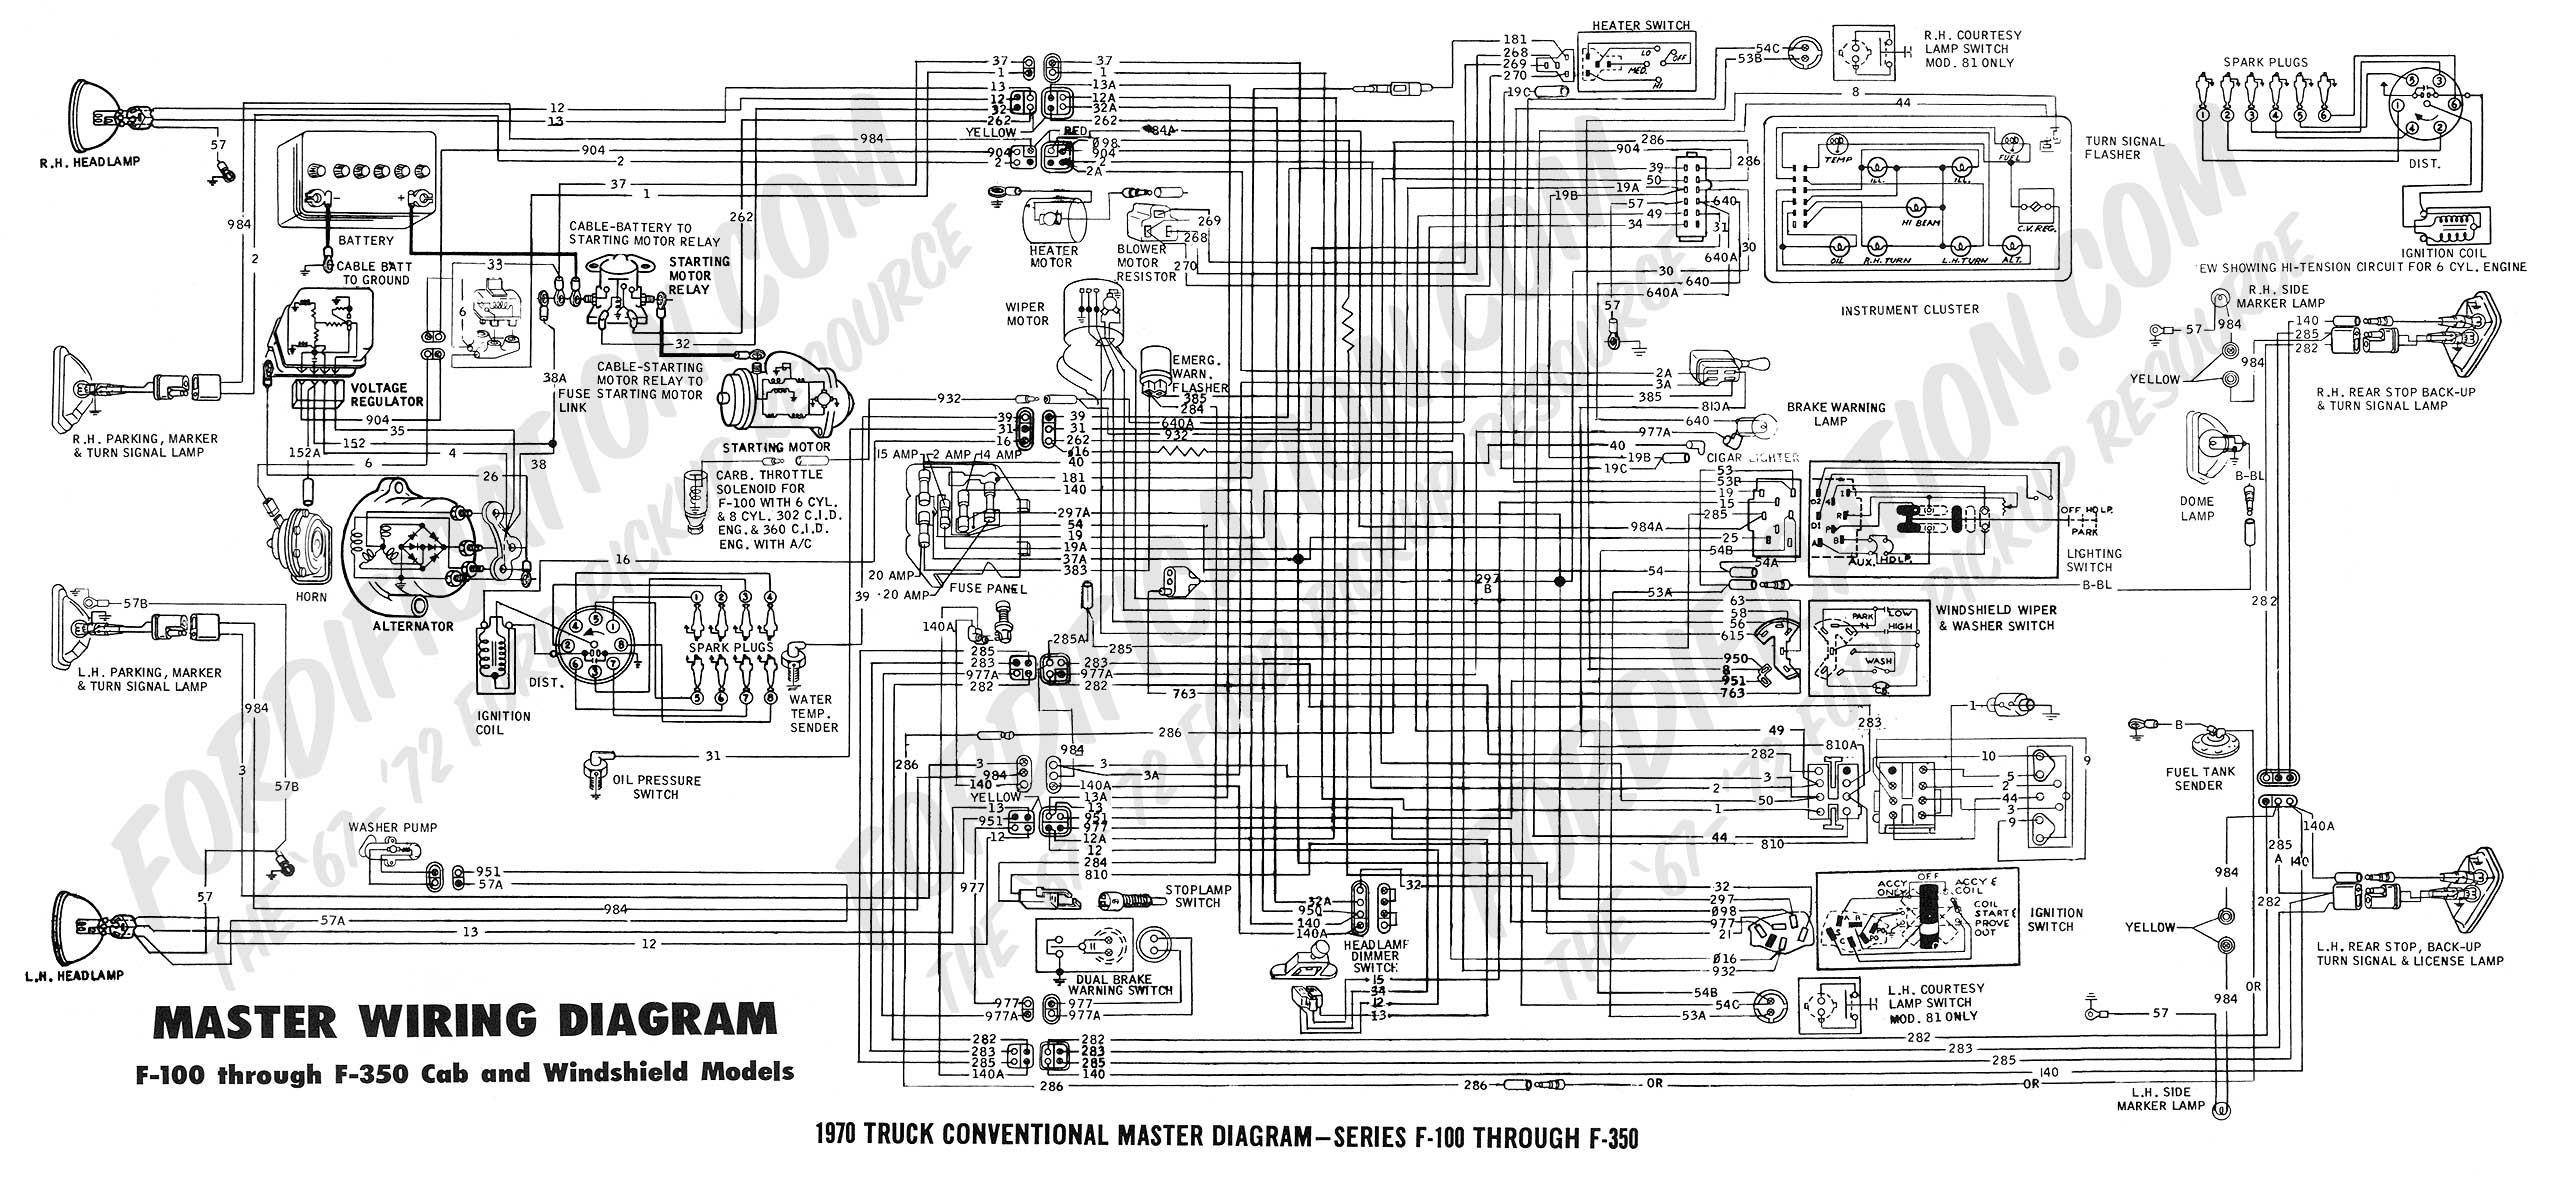 f350 wiring diagram f350 wiring diagrams wiring diagrams